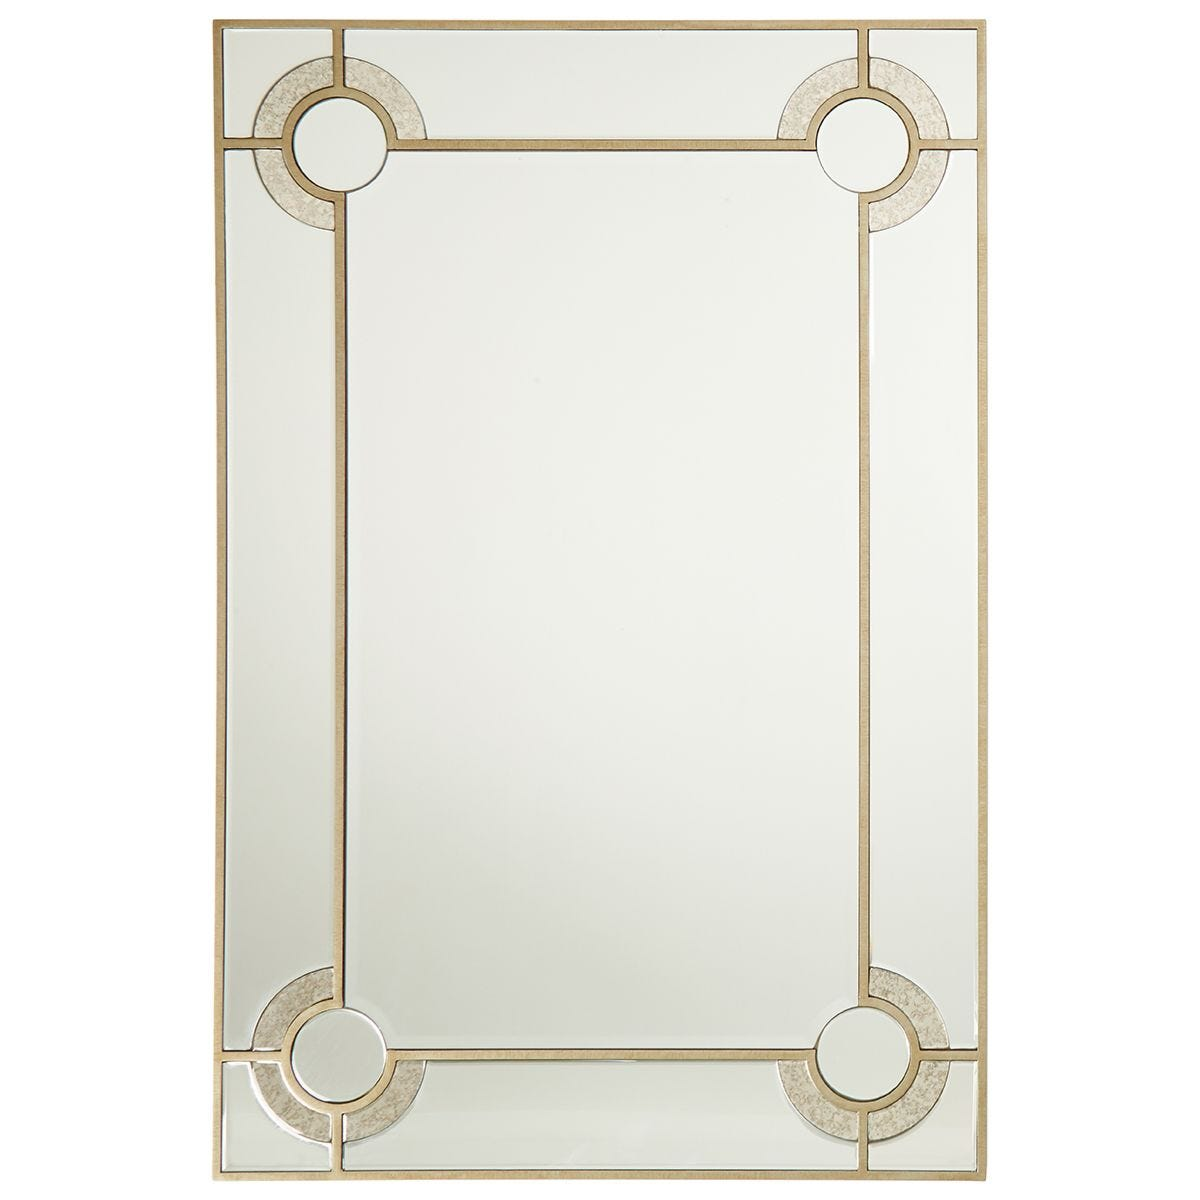 Premier Housewares Knightsbridge Wall Mirror - Champagne Finish